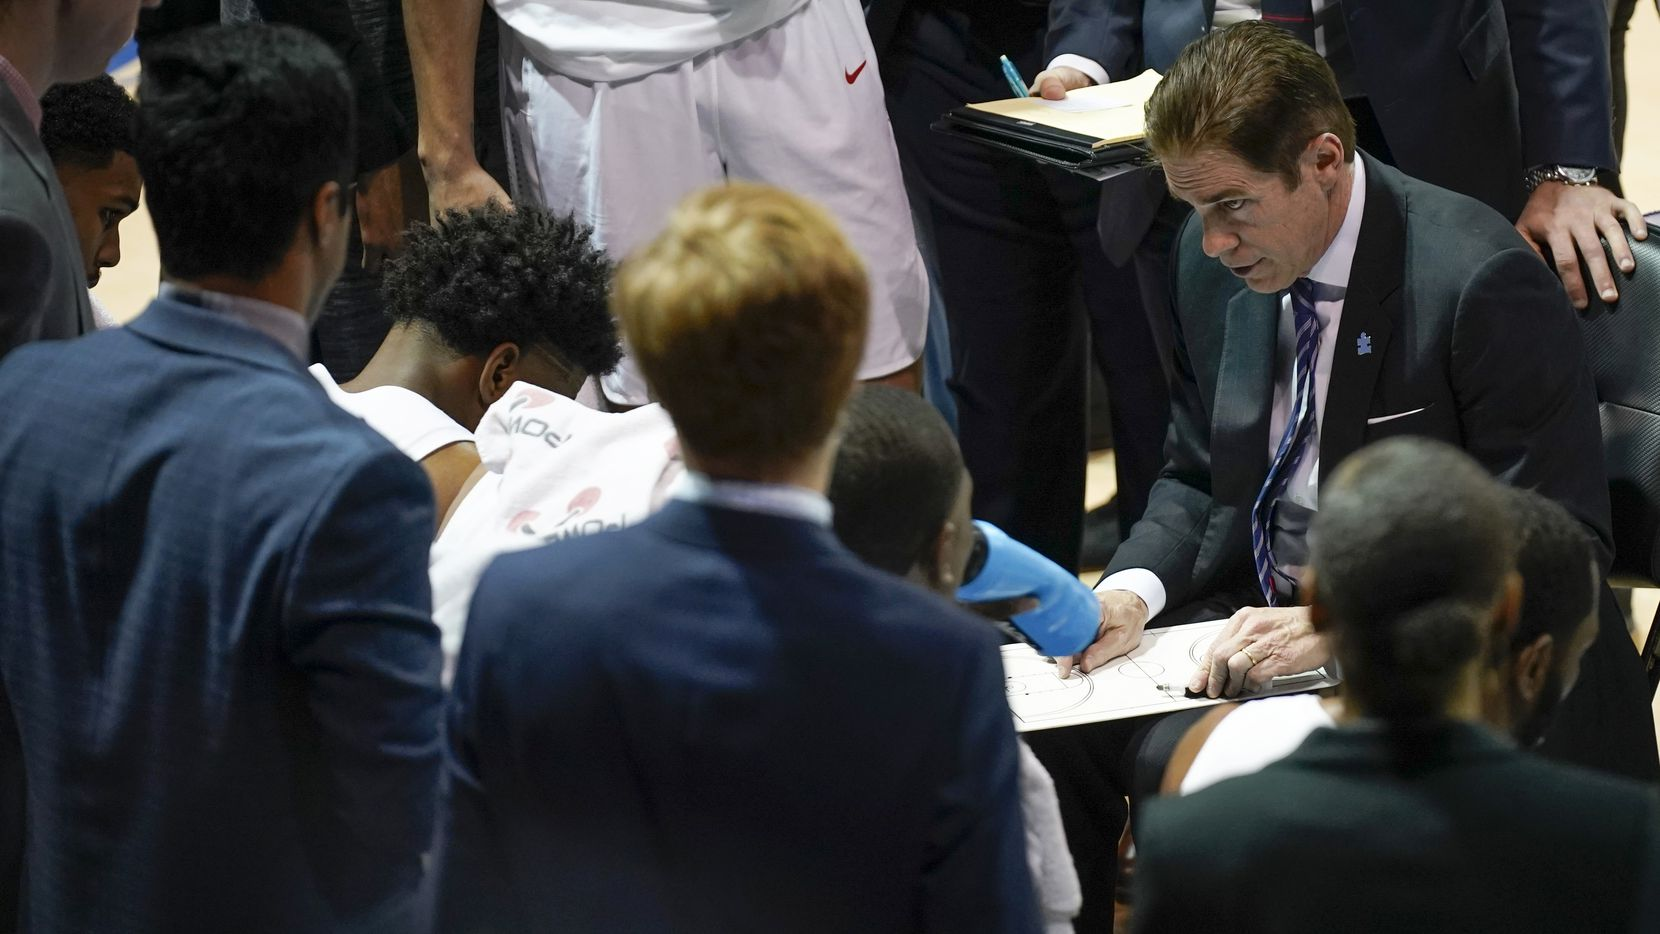 SMU players huddles around head coach Tim Jankovich during a time out in the first half of an NCAA basketball game against Tulane at Moody Coliseum on Saturday, Feb. 1, 2020, in Dallas.